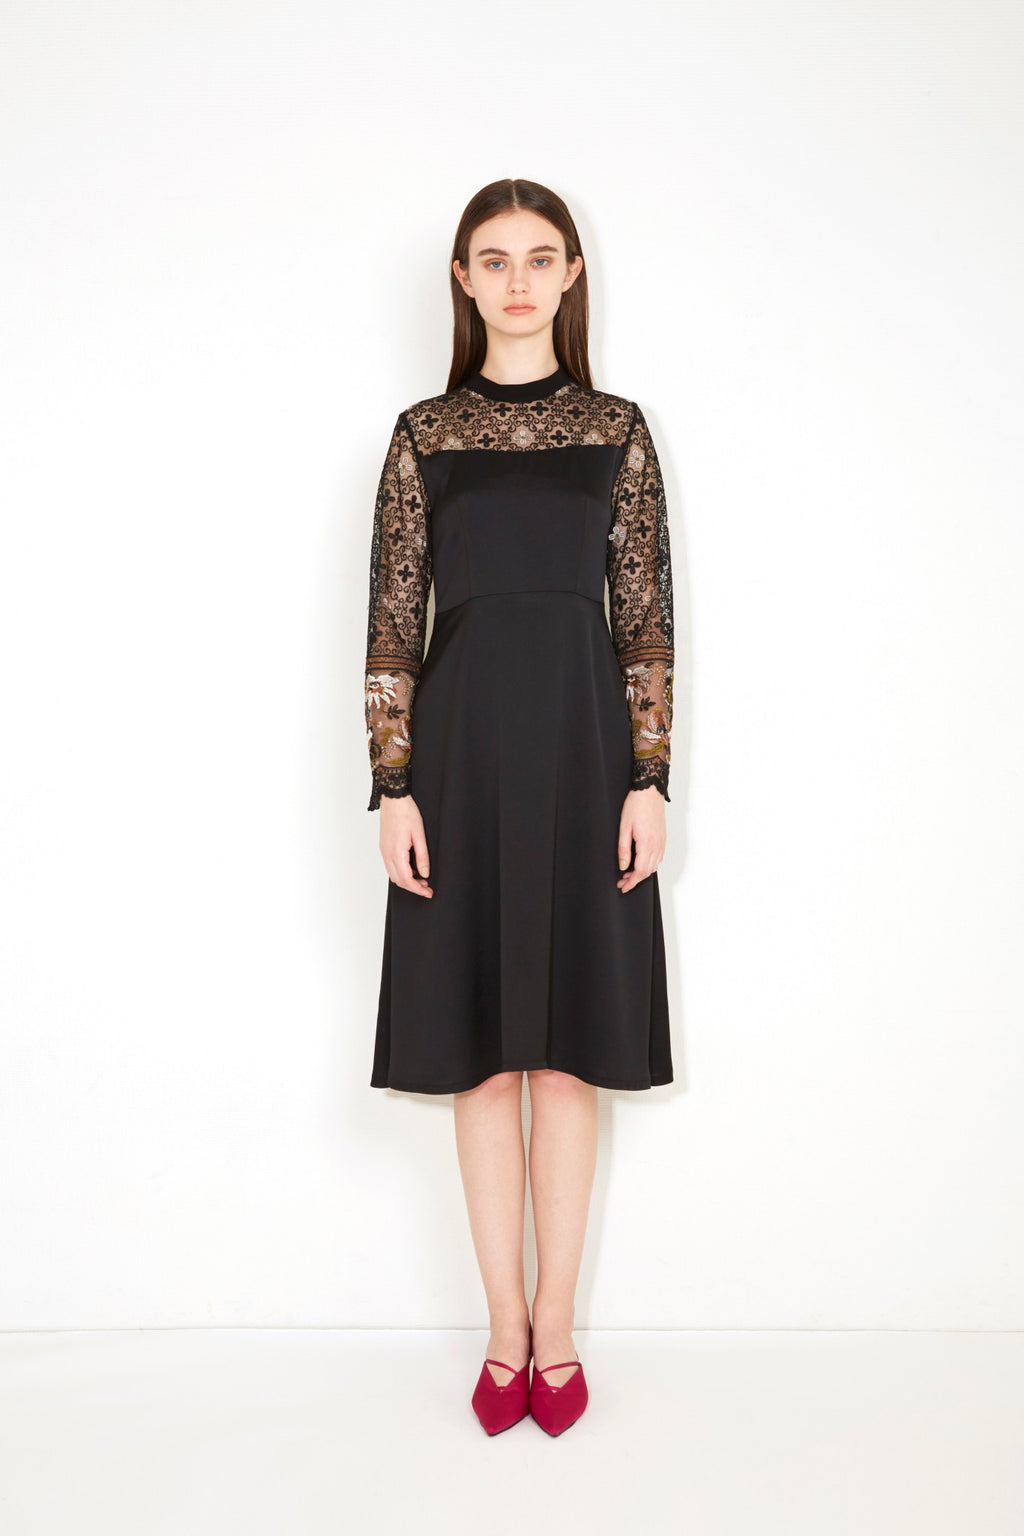 PICTORIAL LACE SLEEVE DRESS